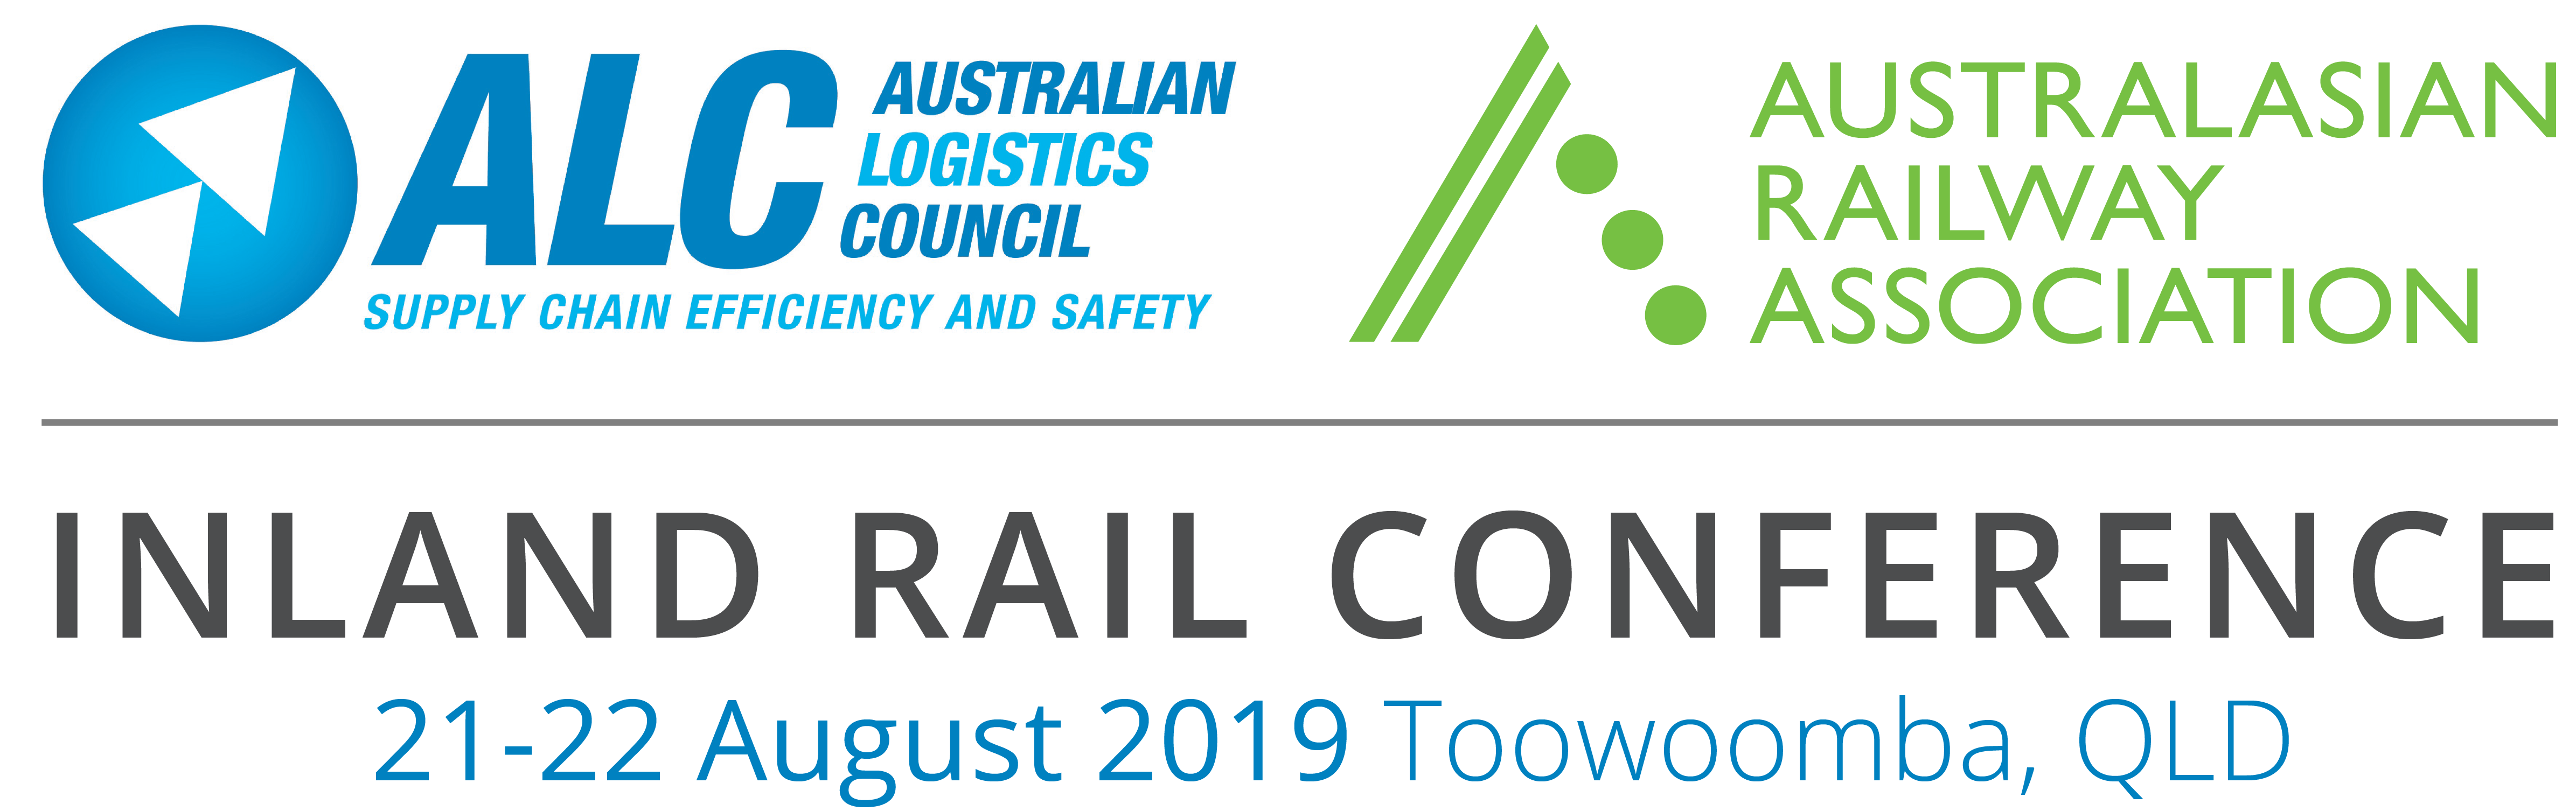 Inland Rail Conference 2019